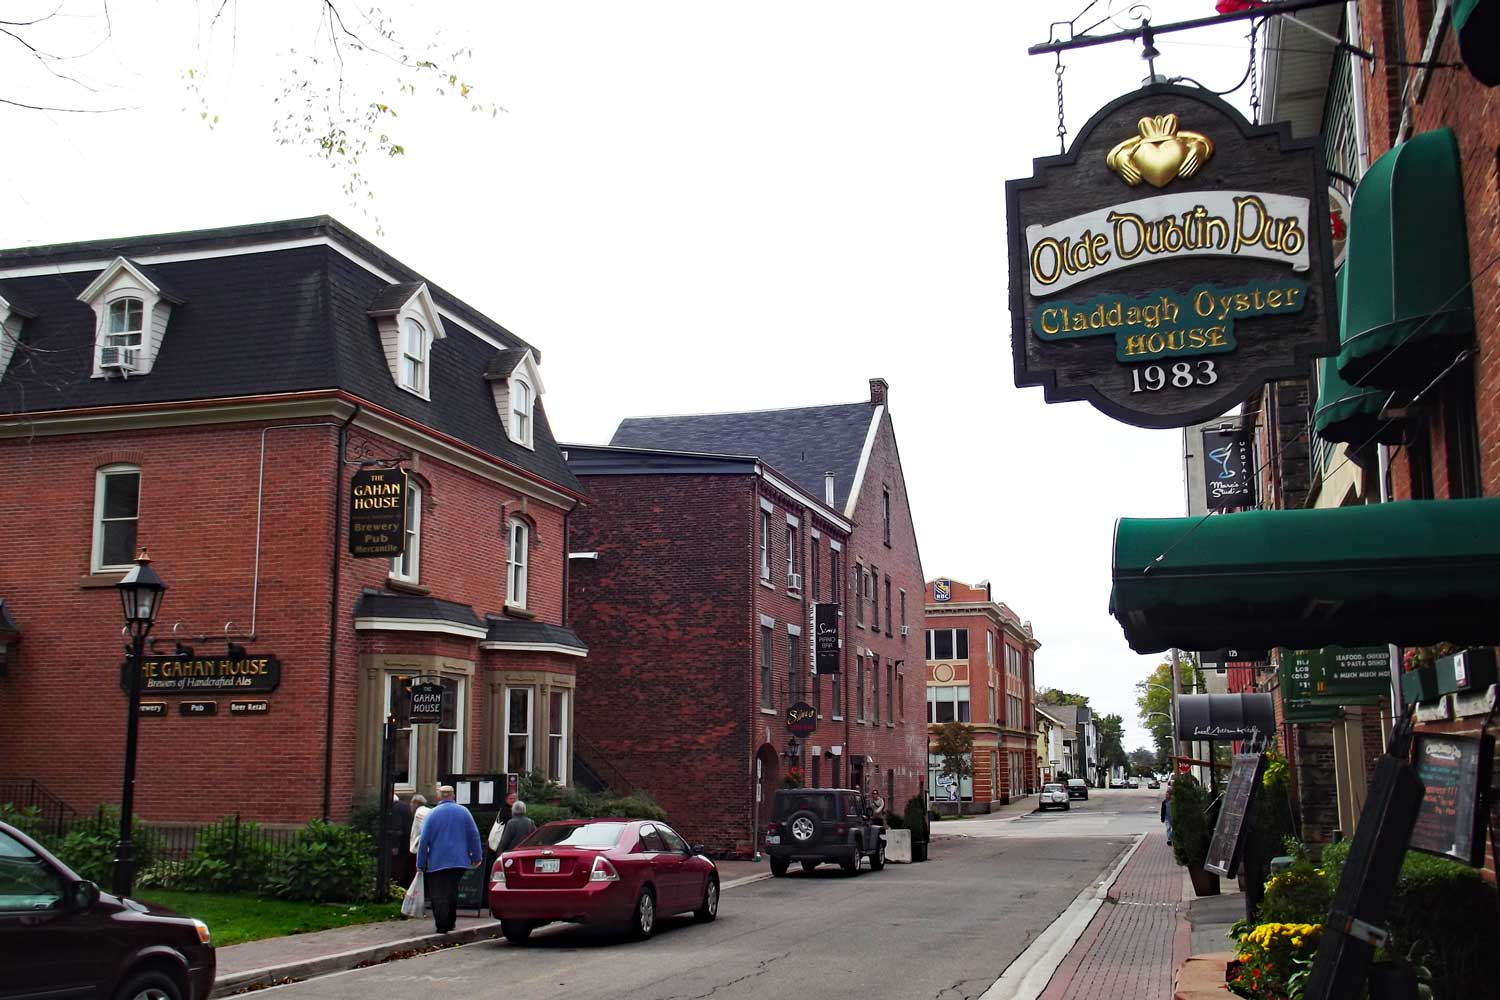 Charming historic streets of Charlottetown, PEI